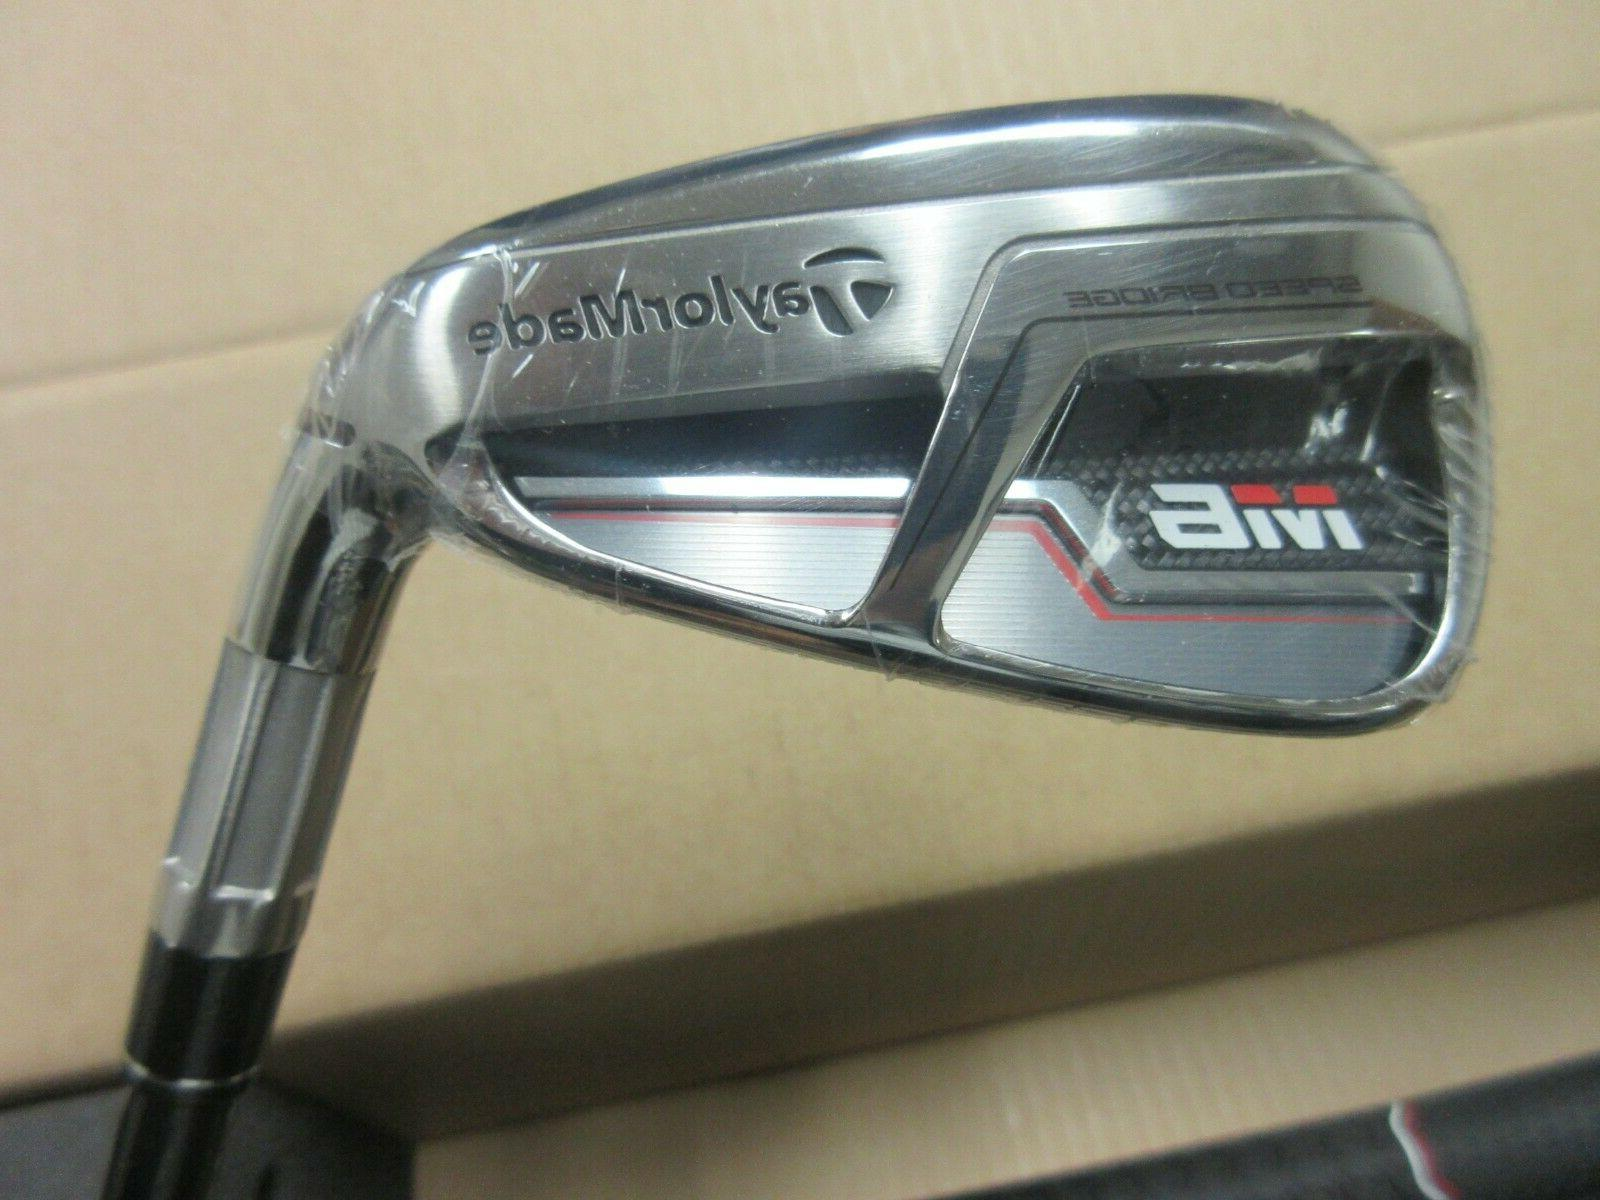 new taylormade golf m6 5 pw iron